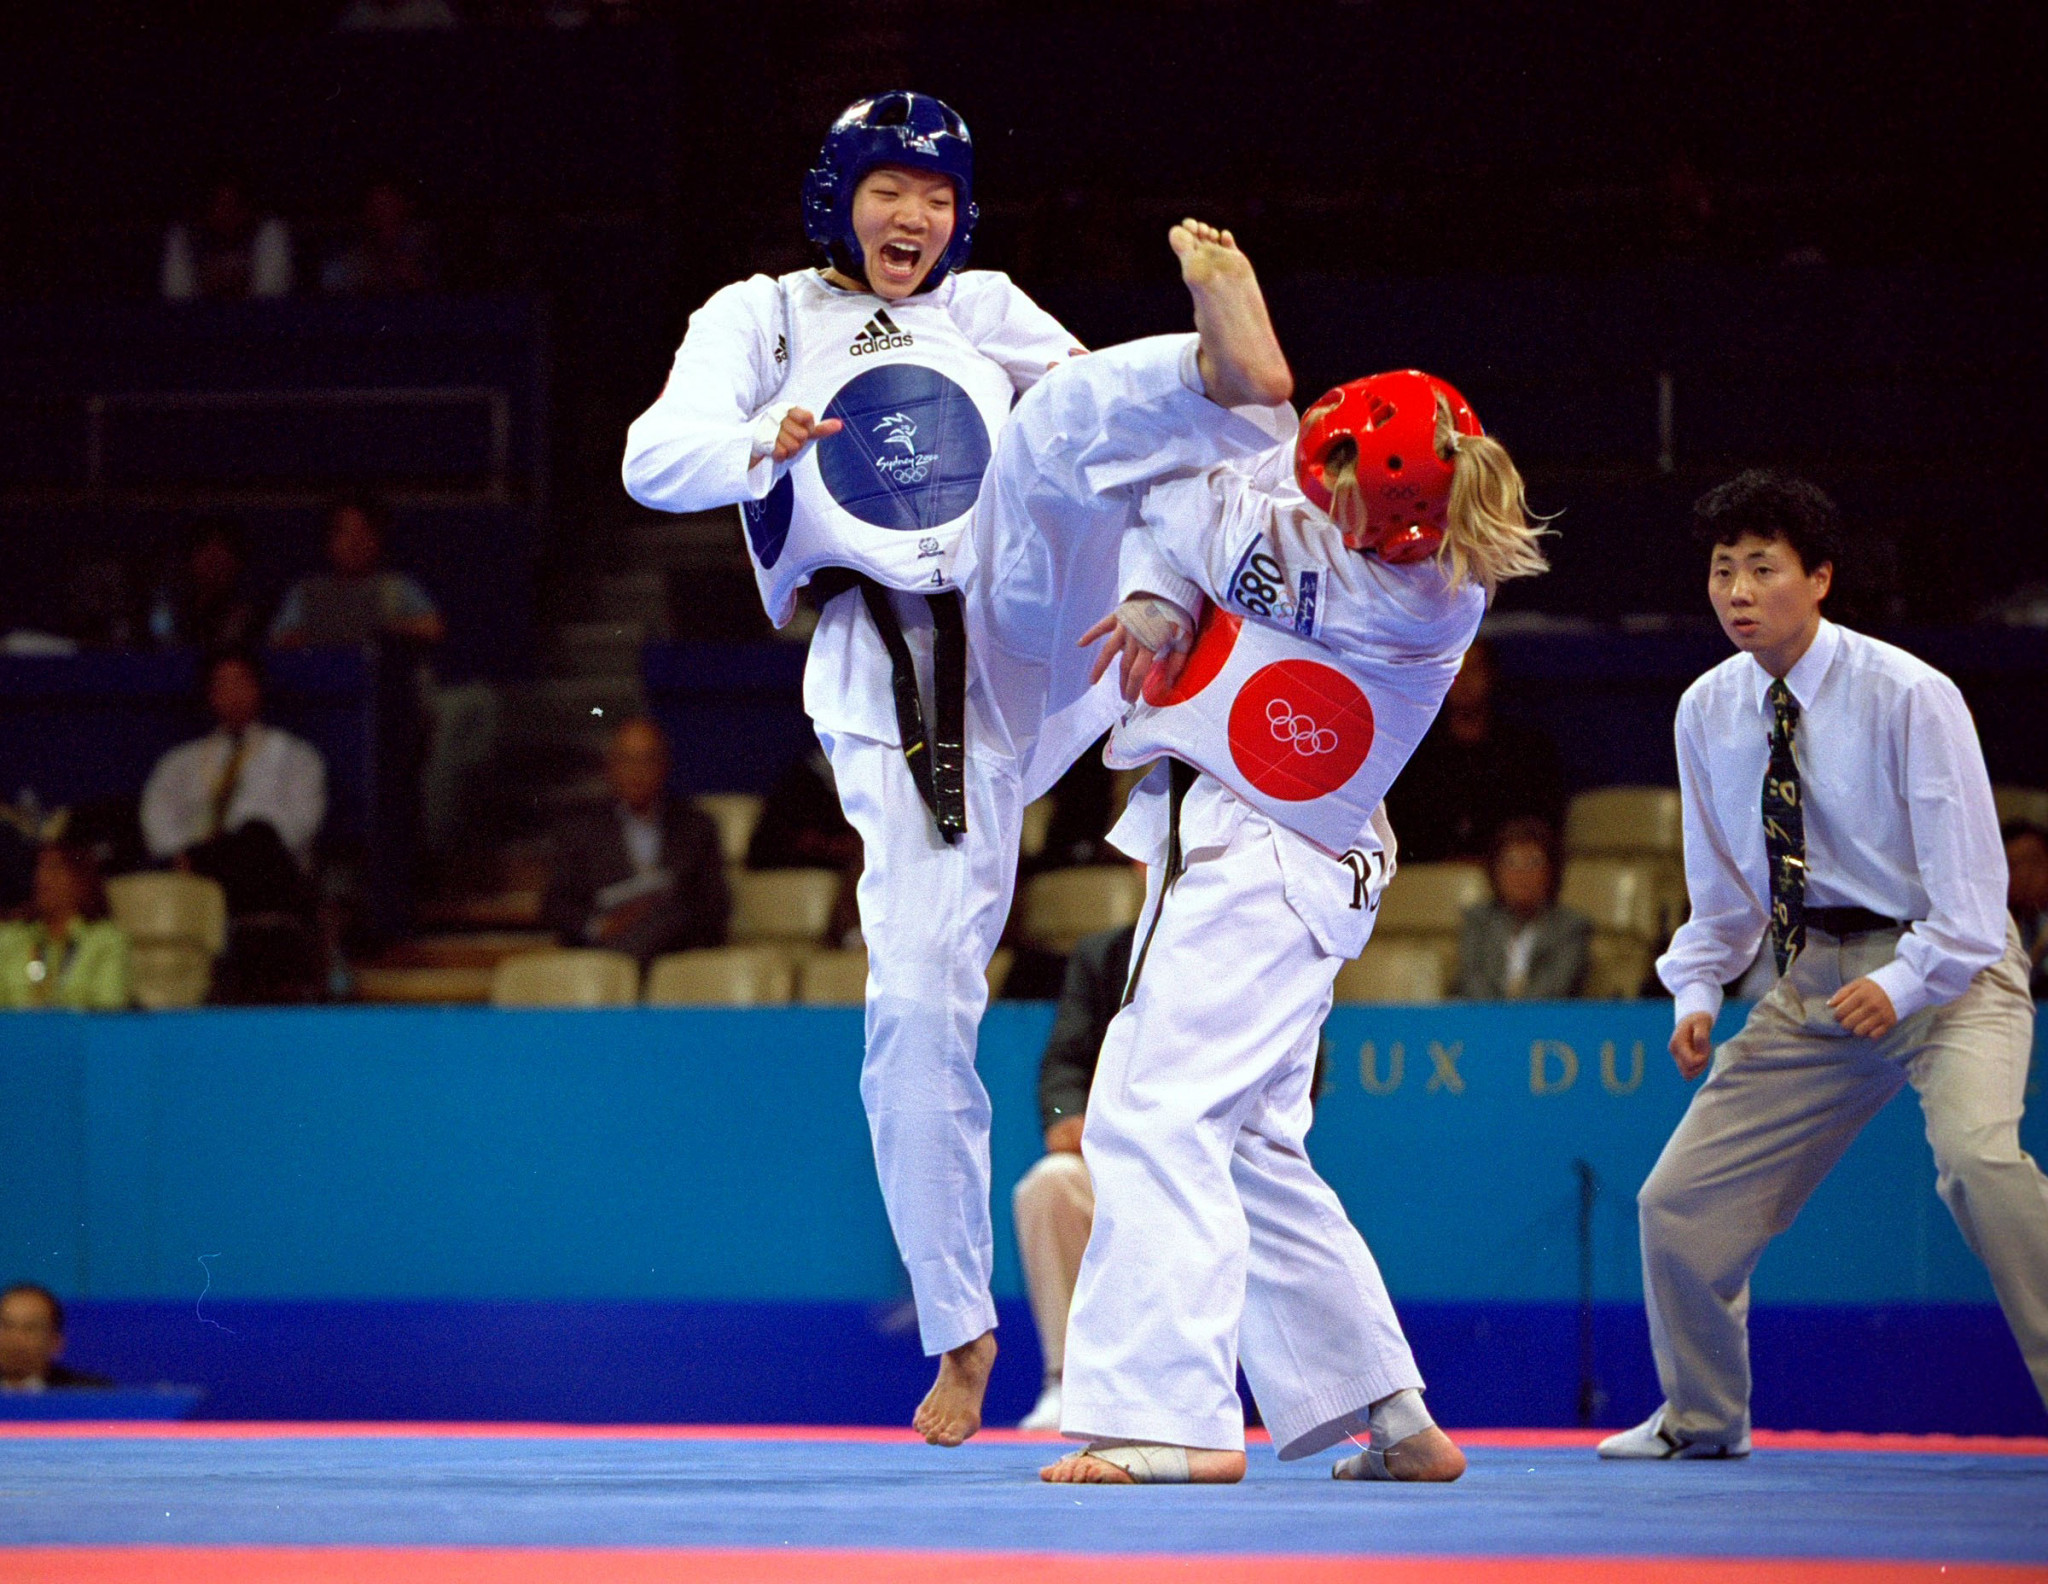 Tokyo 2020 will mark 20 years since taekwondo's Olympic debut at Sydney 2000 ©Getty Images